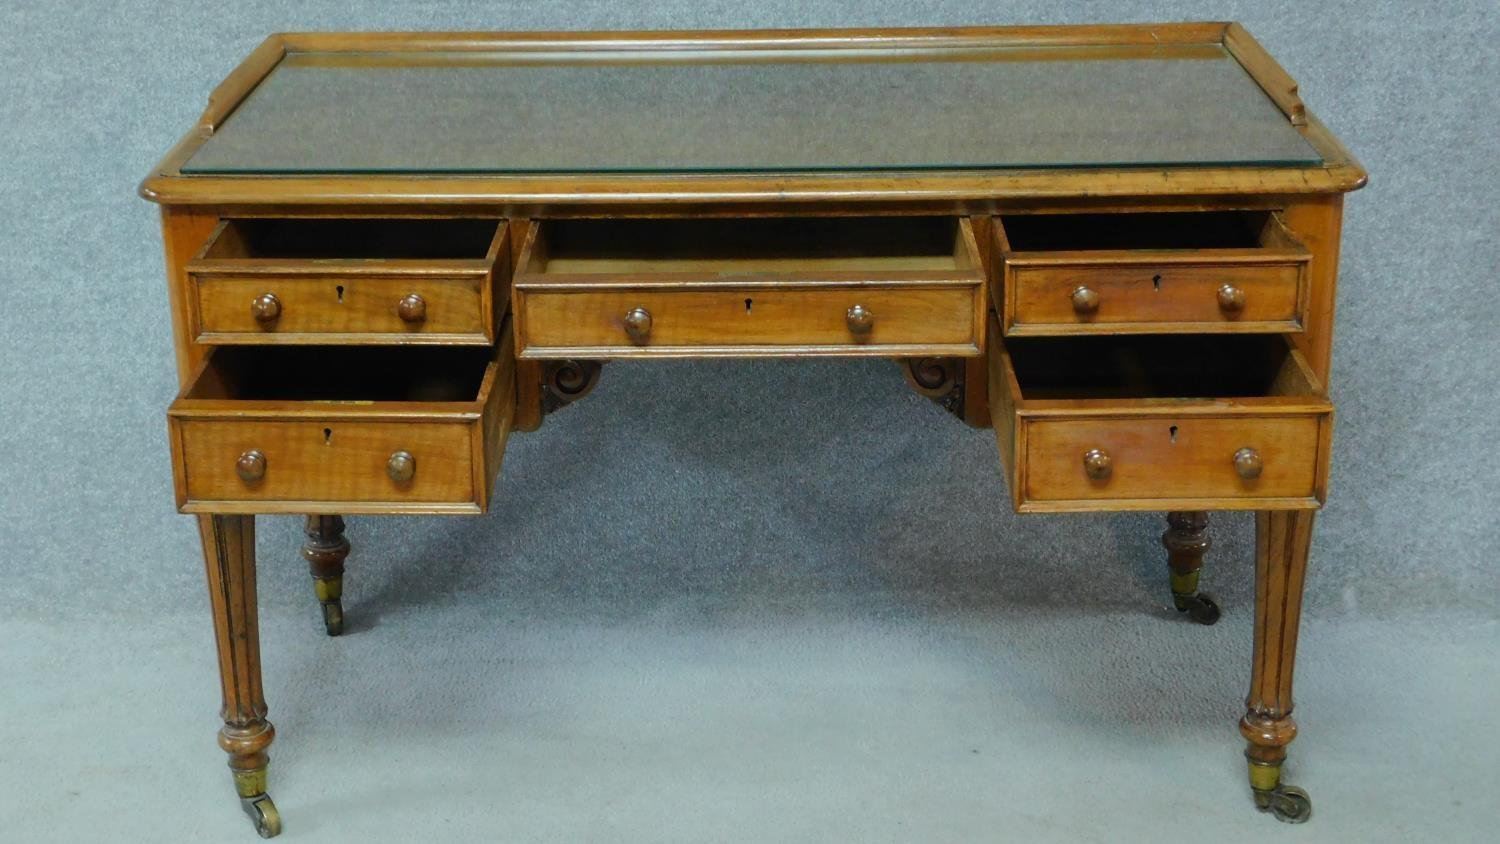 A William IV mahogany writing table with glass inset top and five frieze drawers, raised on tapering - Image 2 of 7